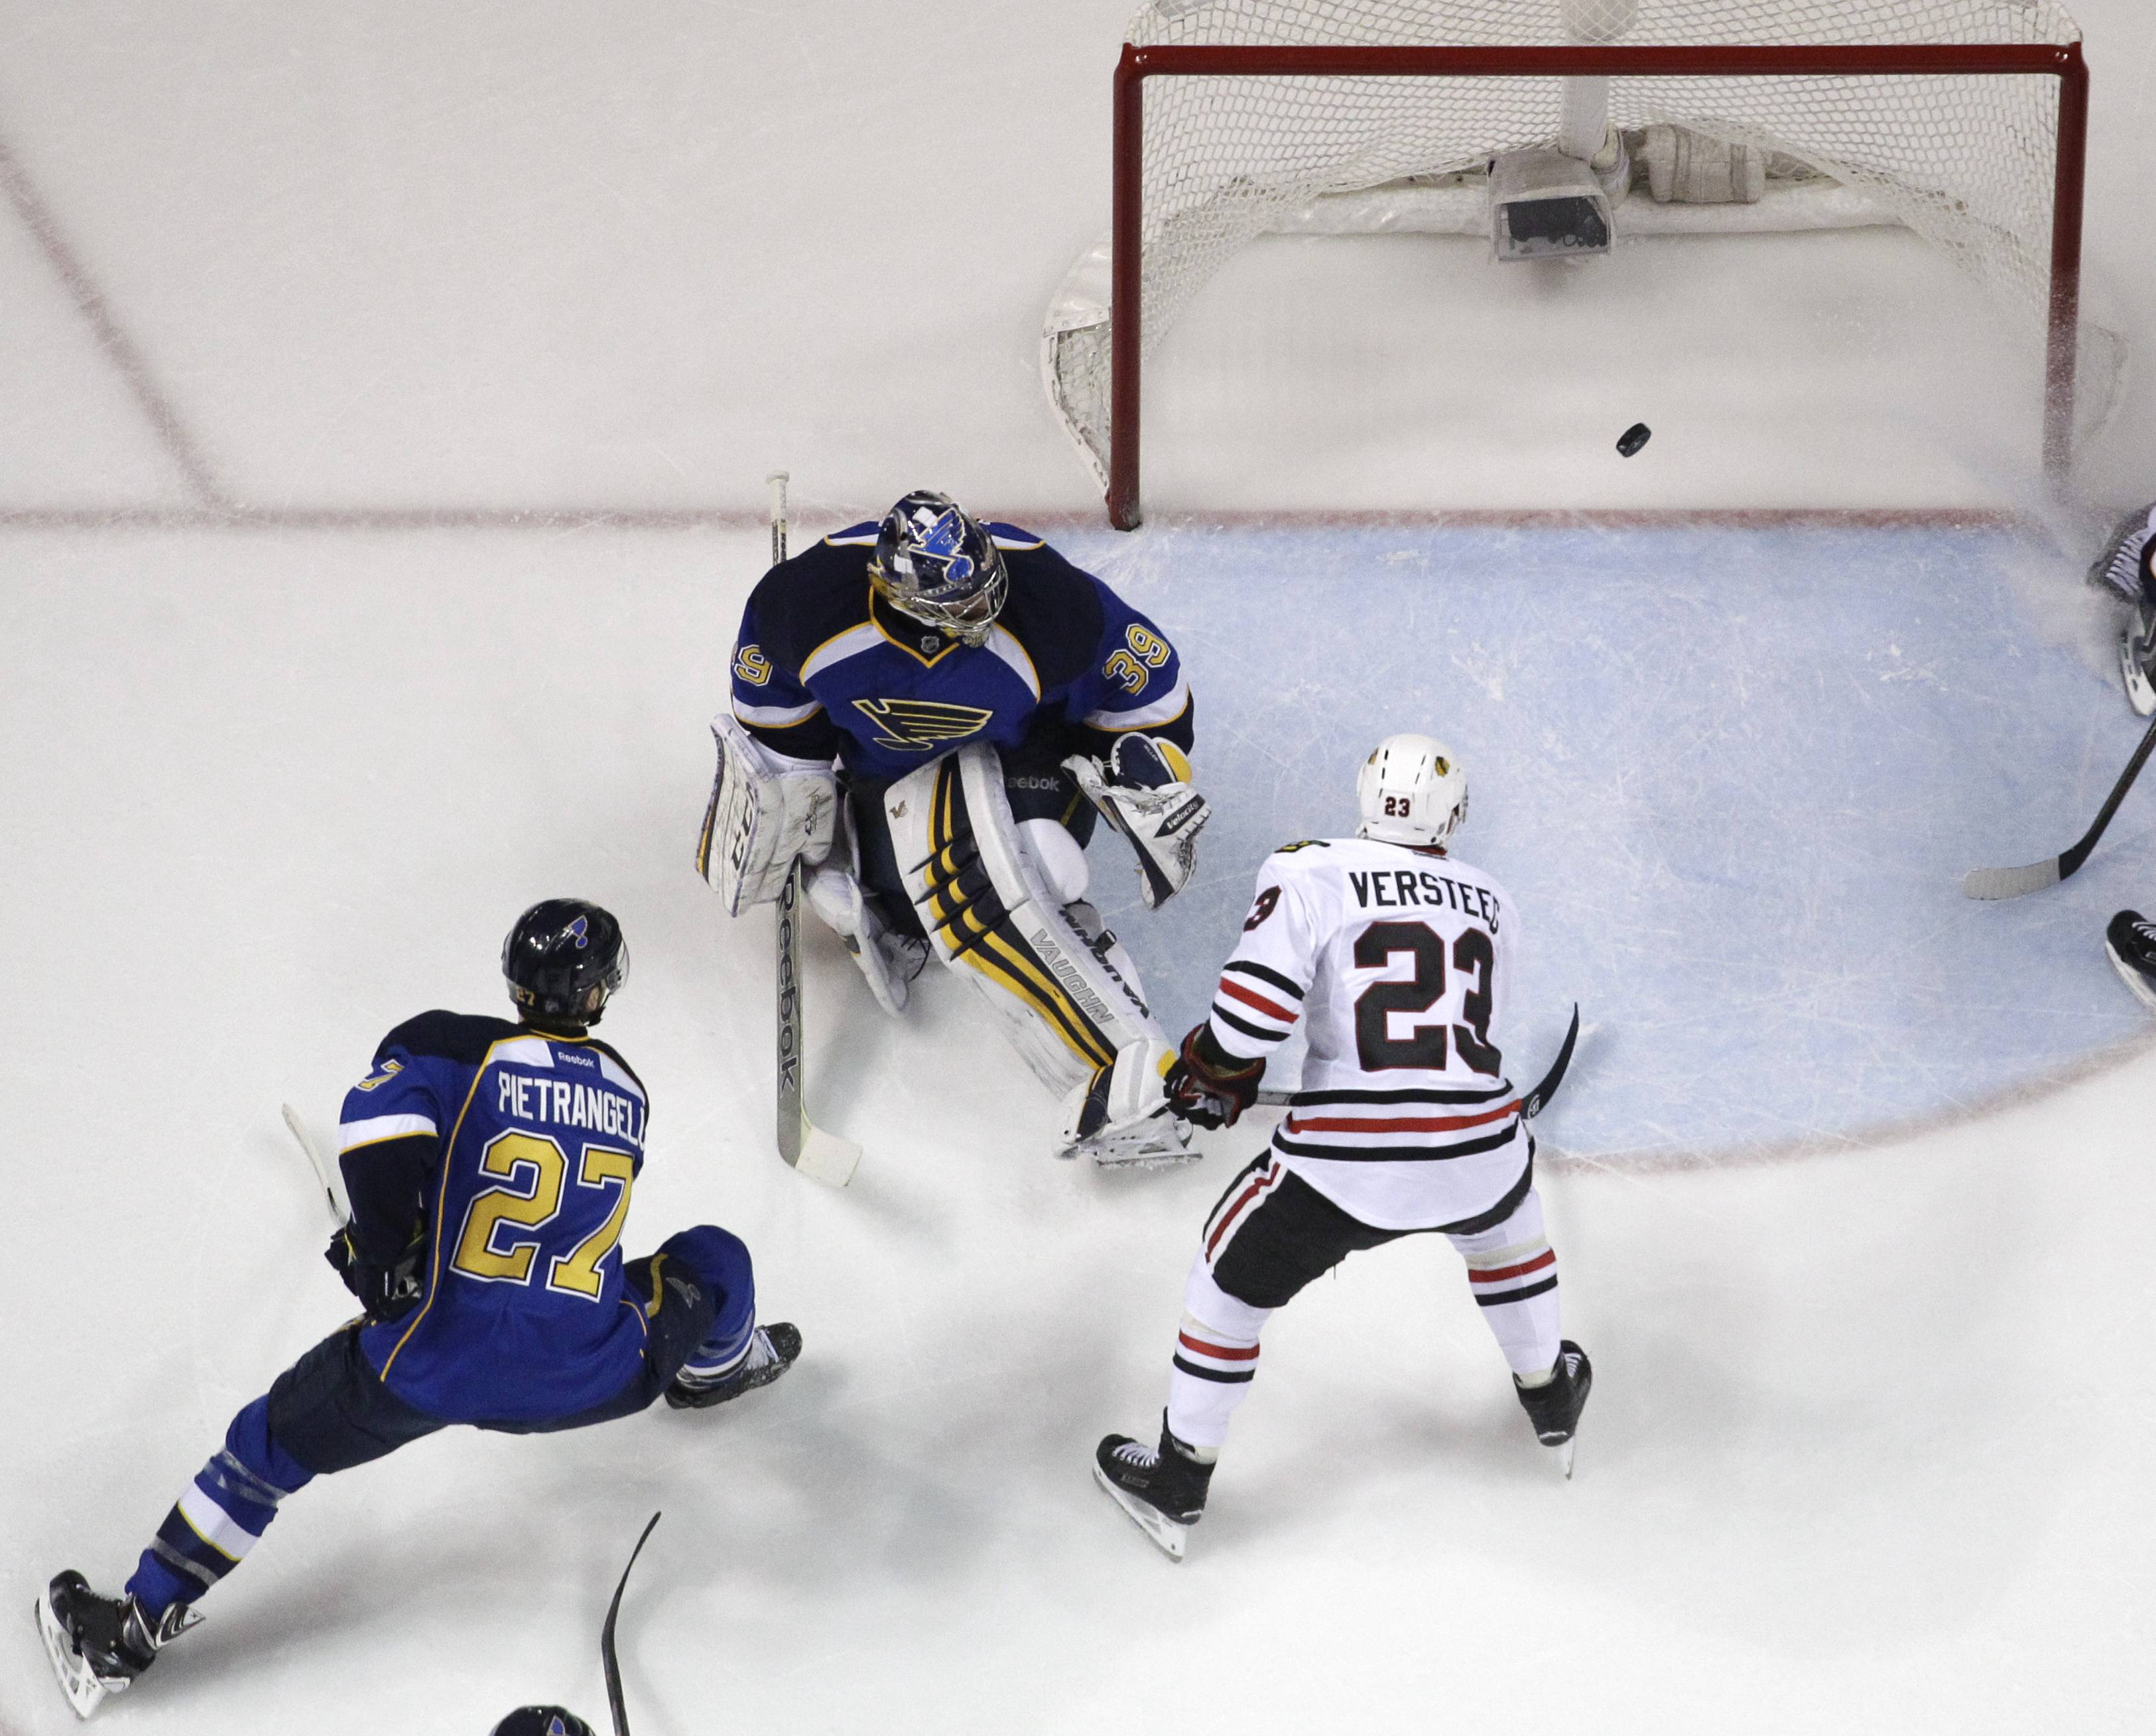 Chicago Blackhawks' Kris Versteeg (23) scores past St. Louis Blues goalie Ryan Miller and Blues' Alex Pietrangelo (27) during the first period in Game 1 of a first-round NHL hockey Stanley Cup playoff series Thursday, April 17, 2014, in St. Louis.